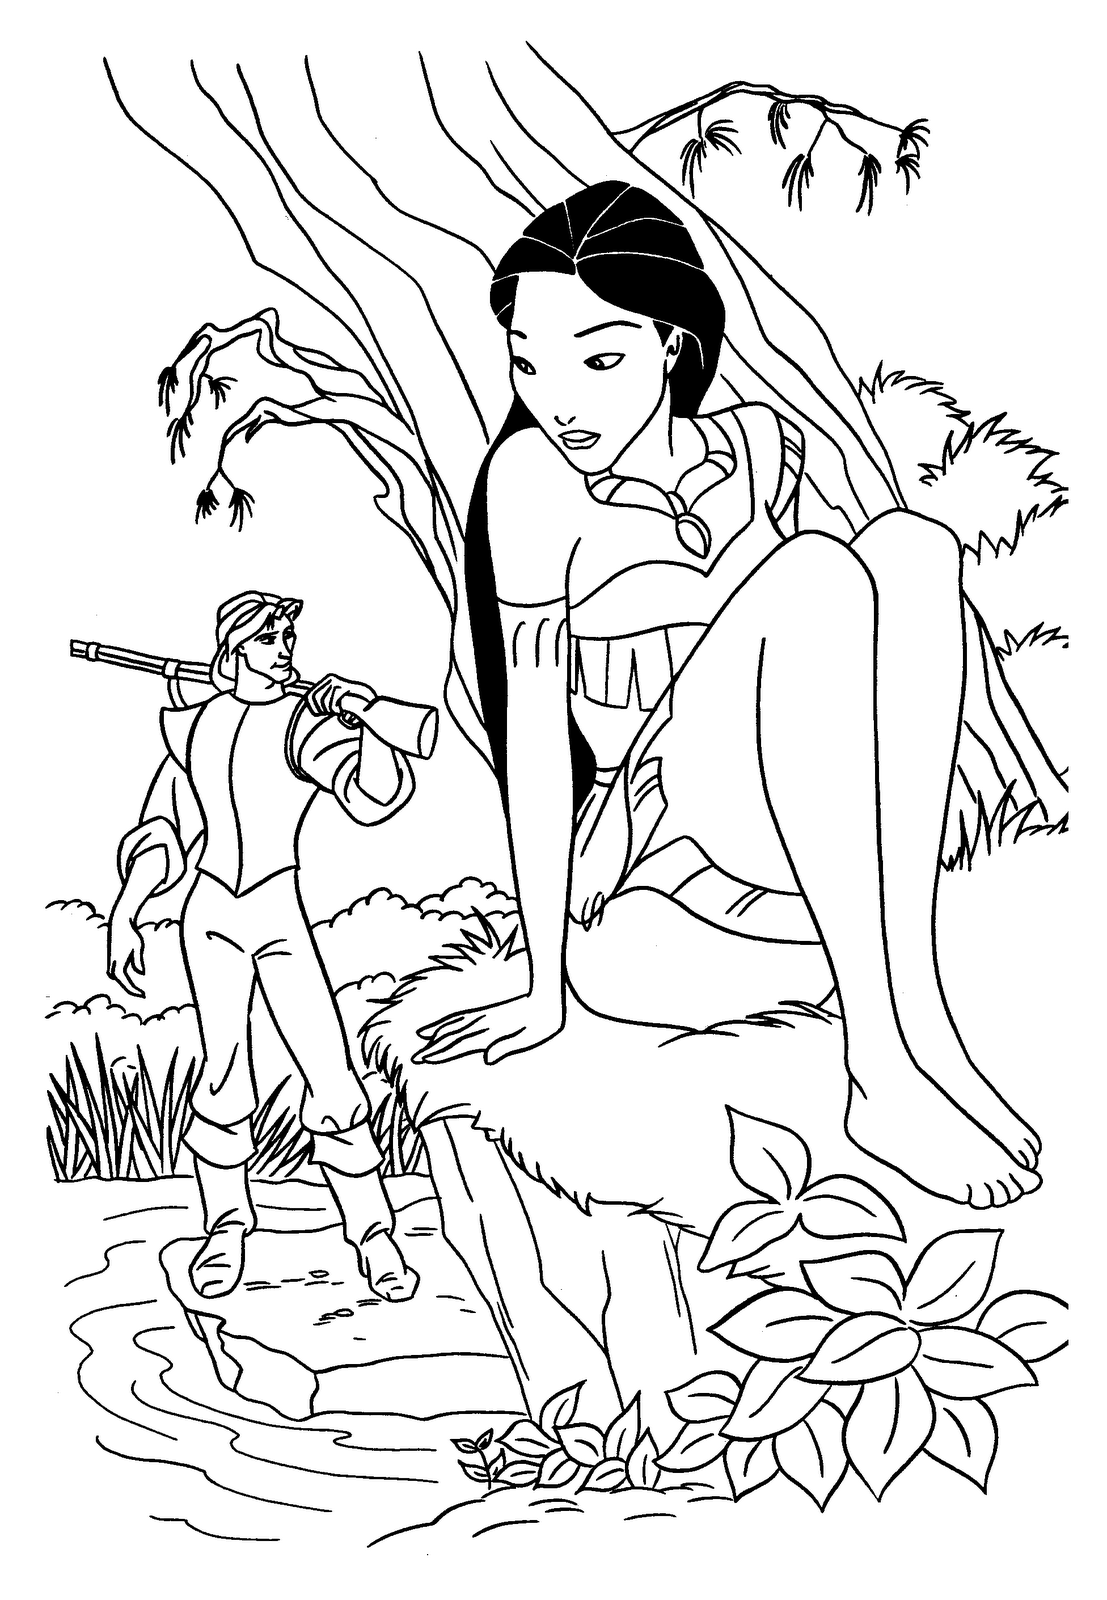 coloring disney pages tangled coloring pages disneyclipscom pages coloring disney